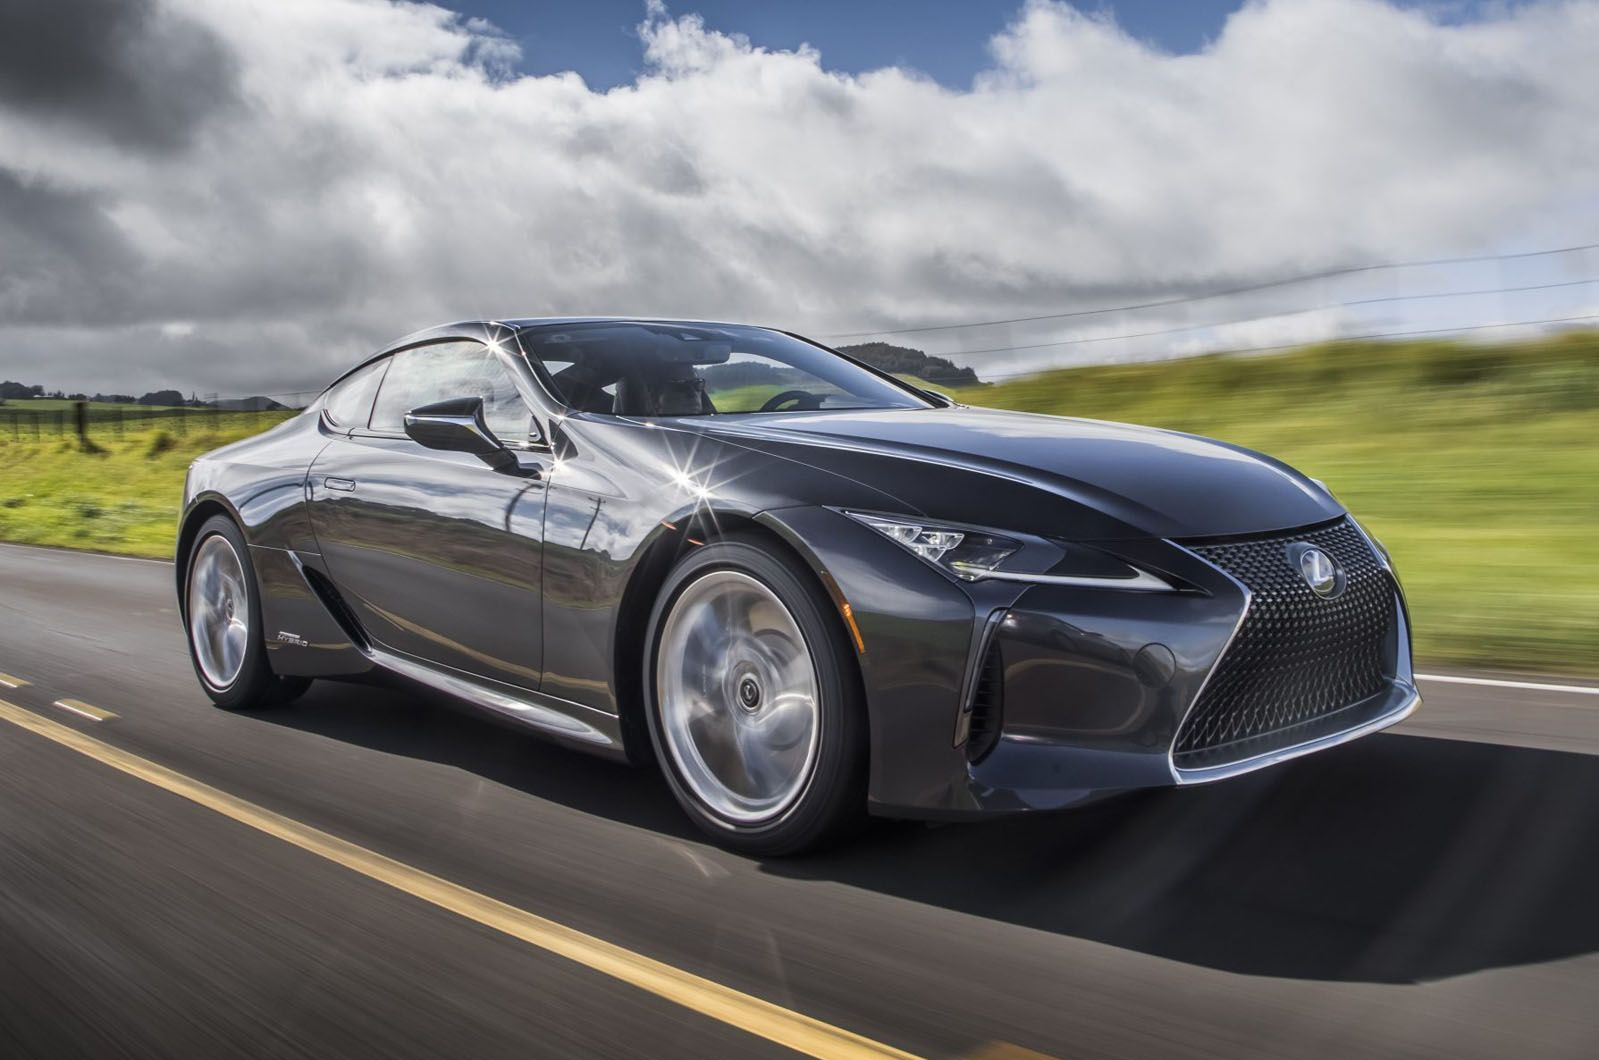 Lexus LC coupe loses weight and gains tech for 2020 https